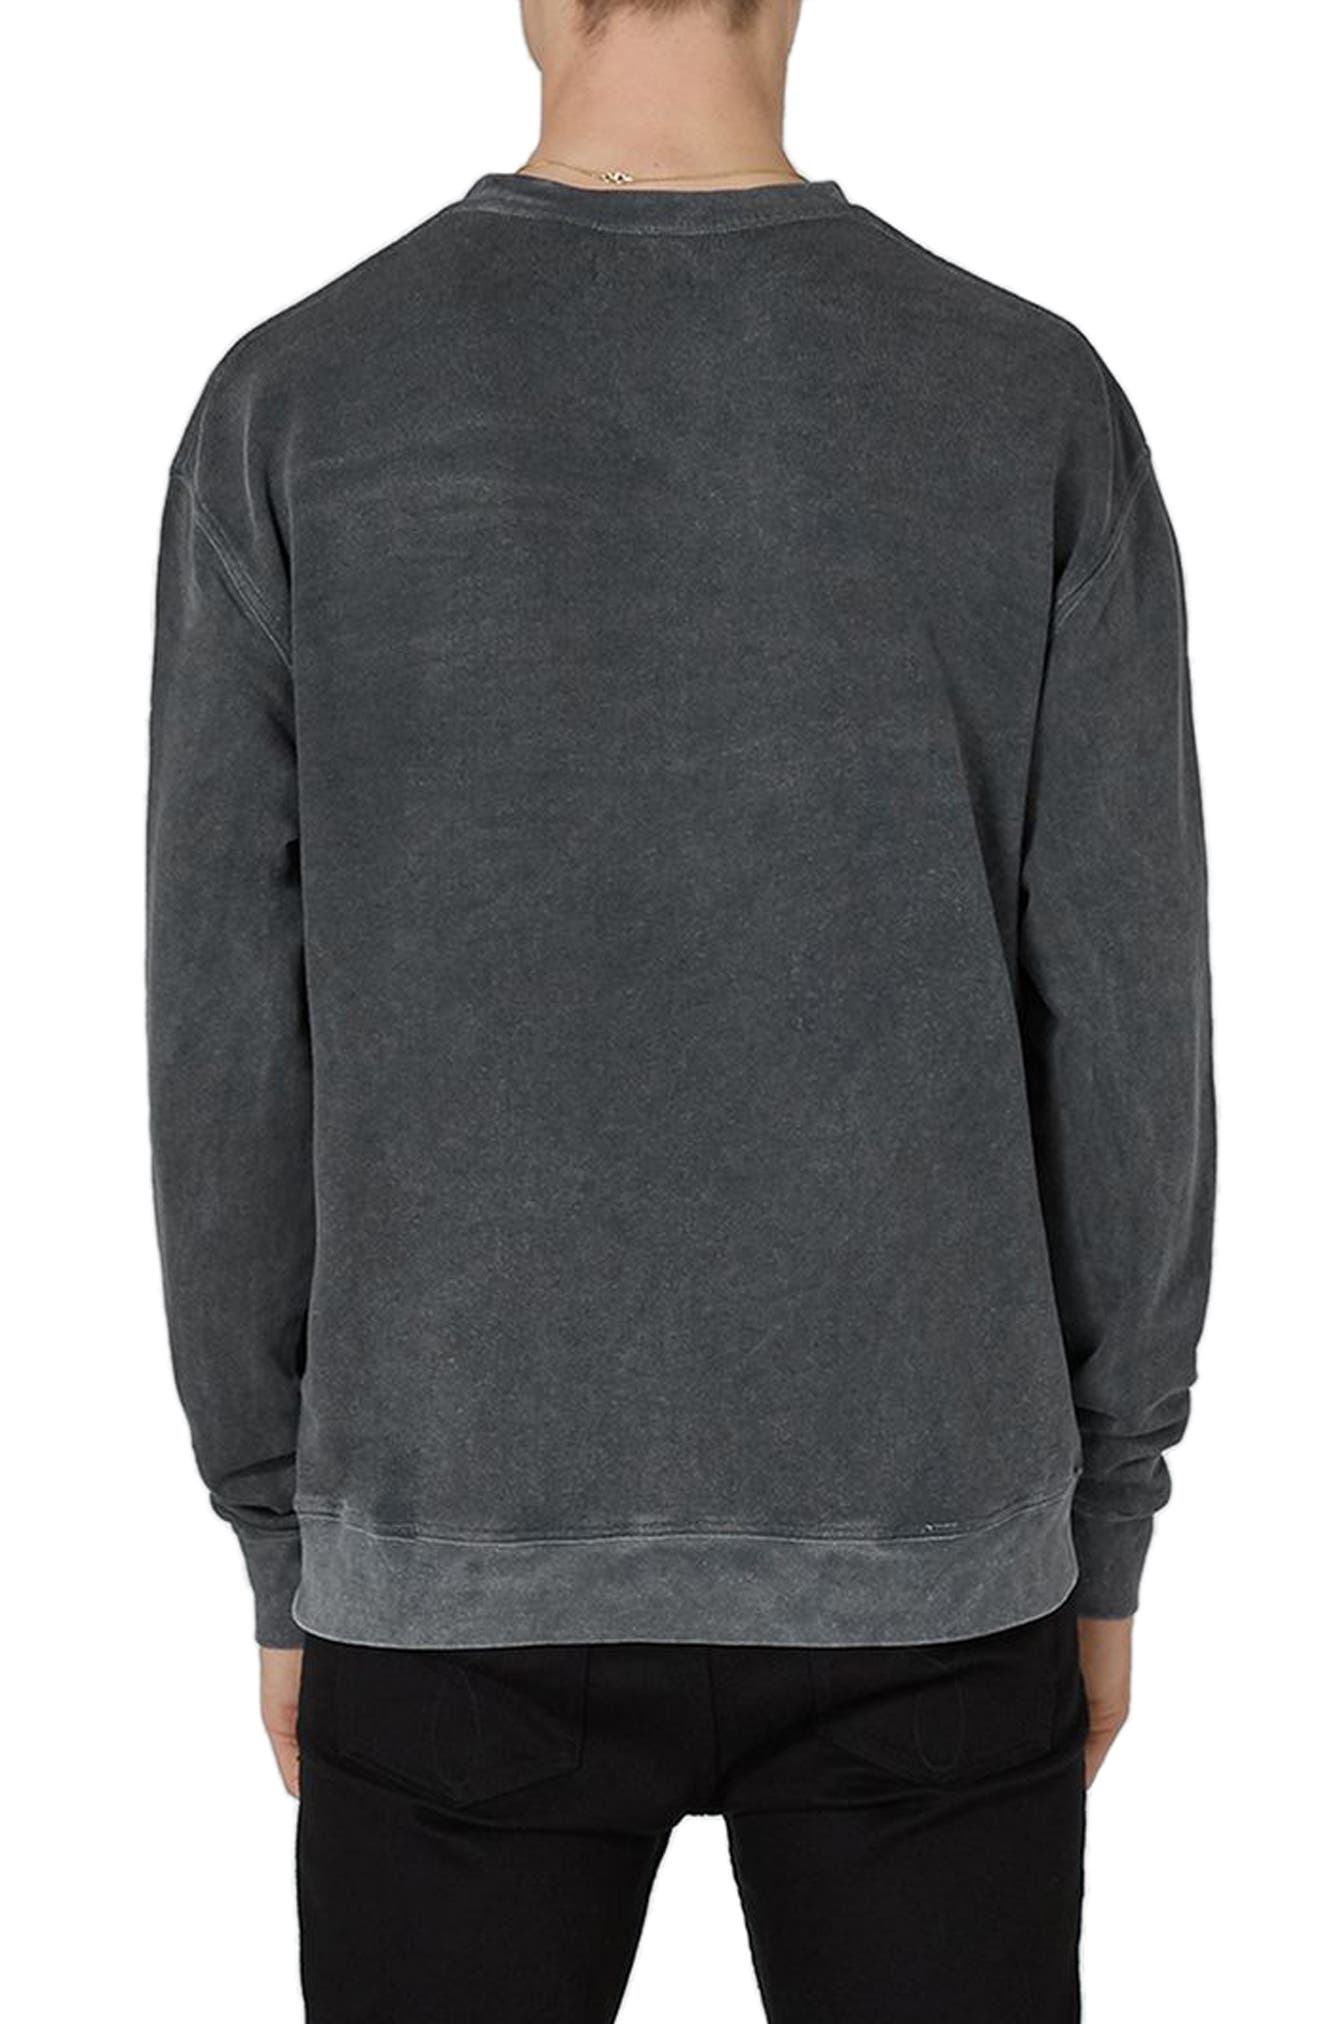 Percy Rose Embroidered Sweatshirt,                             Alternate thumbnail 2, color,                             Grey